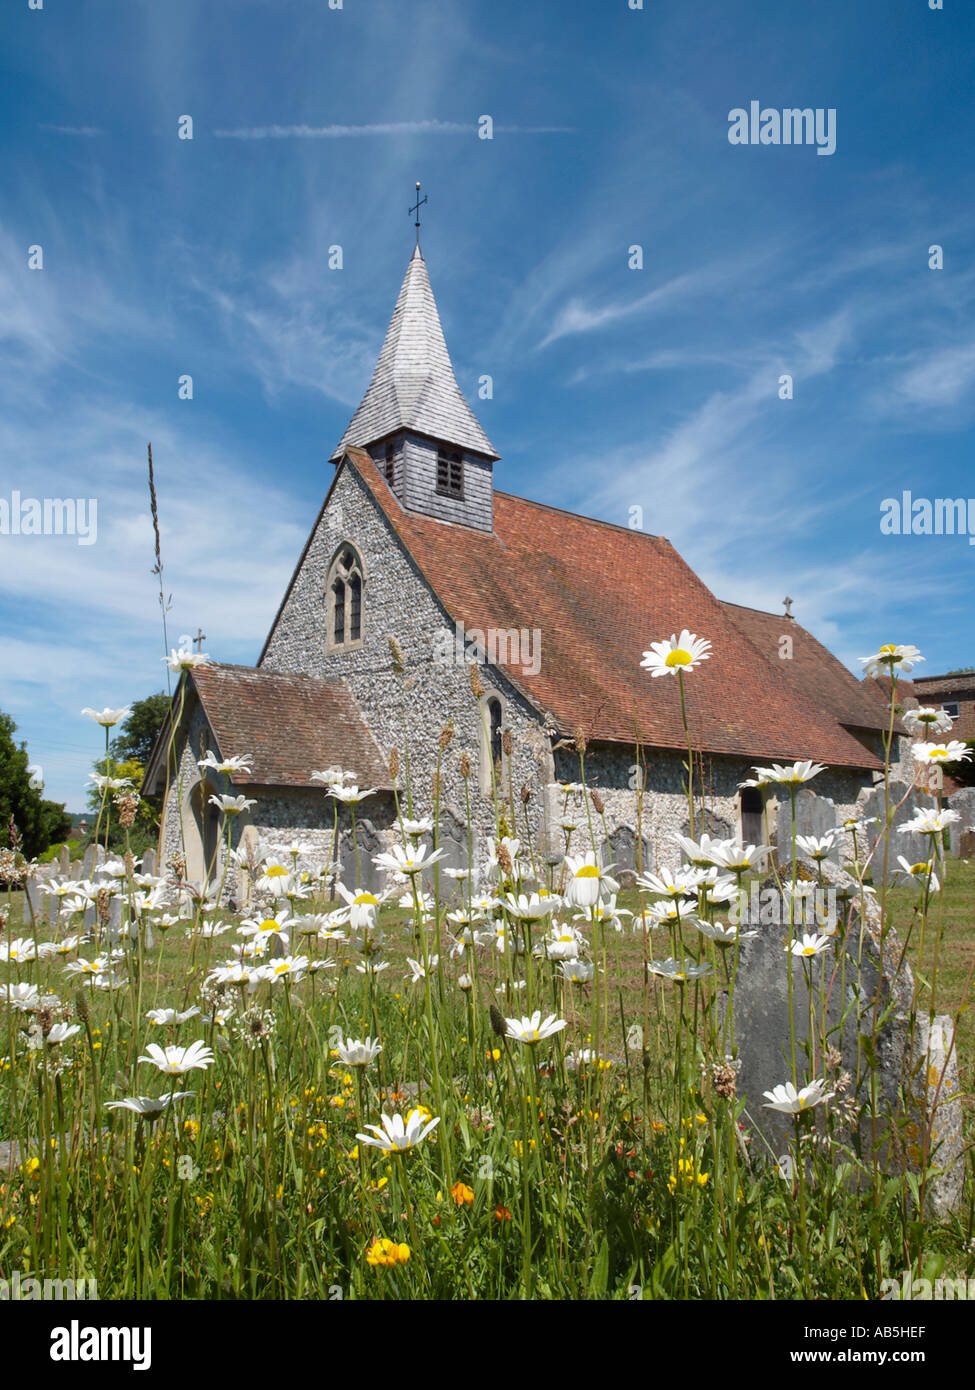 PARISH CHURCH of ST MARGARETS with Oxeye Daisies Eartham West Sussex England UK Stock Photo